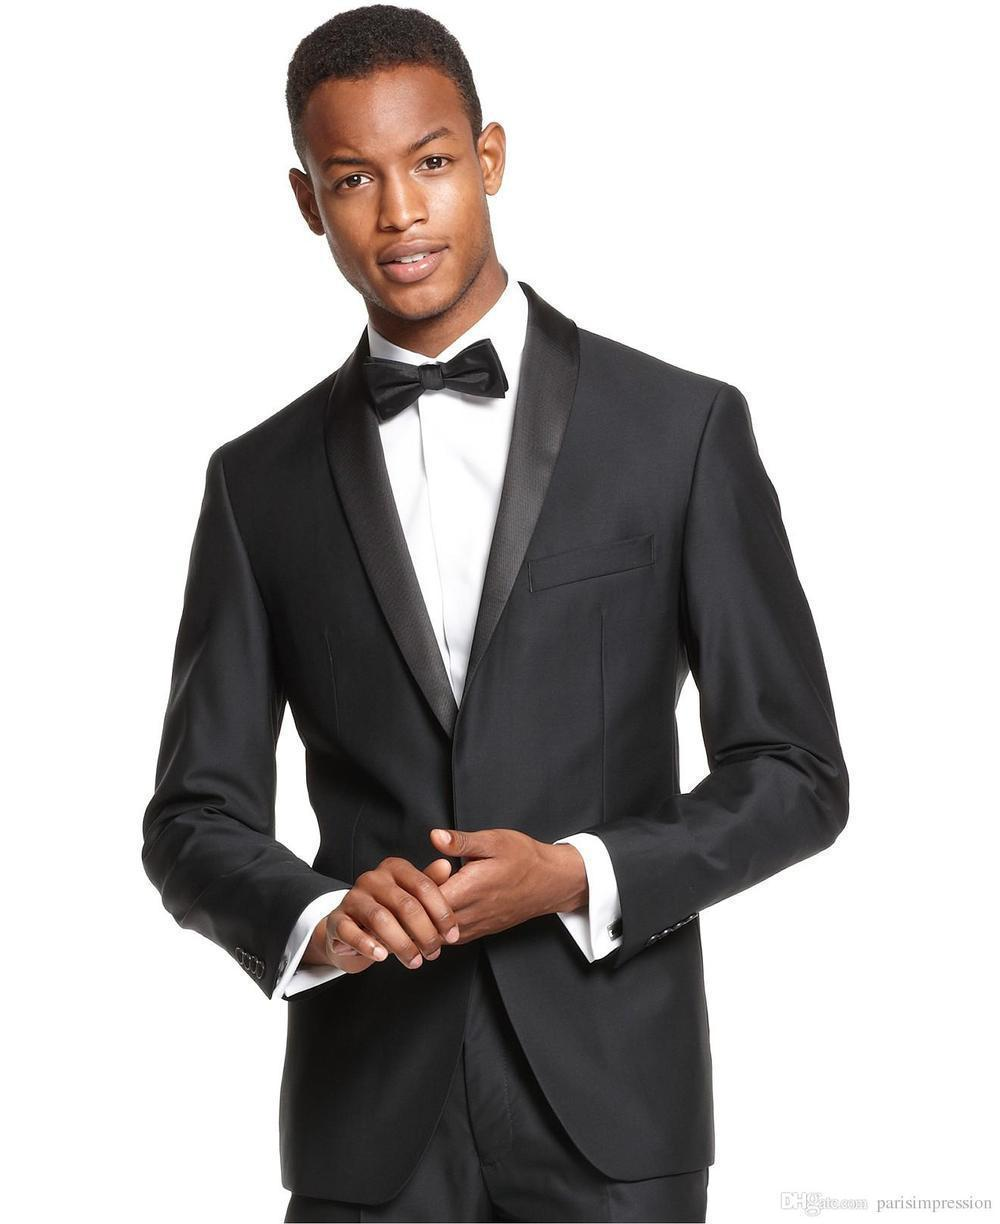 10 Ways Of When And How To Wear A Tuxedo. | Botswana Youth Magazine